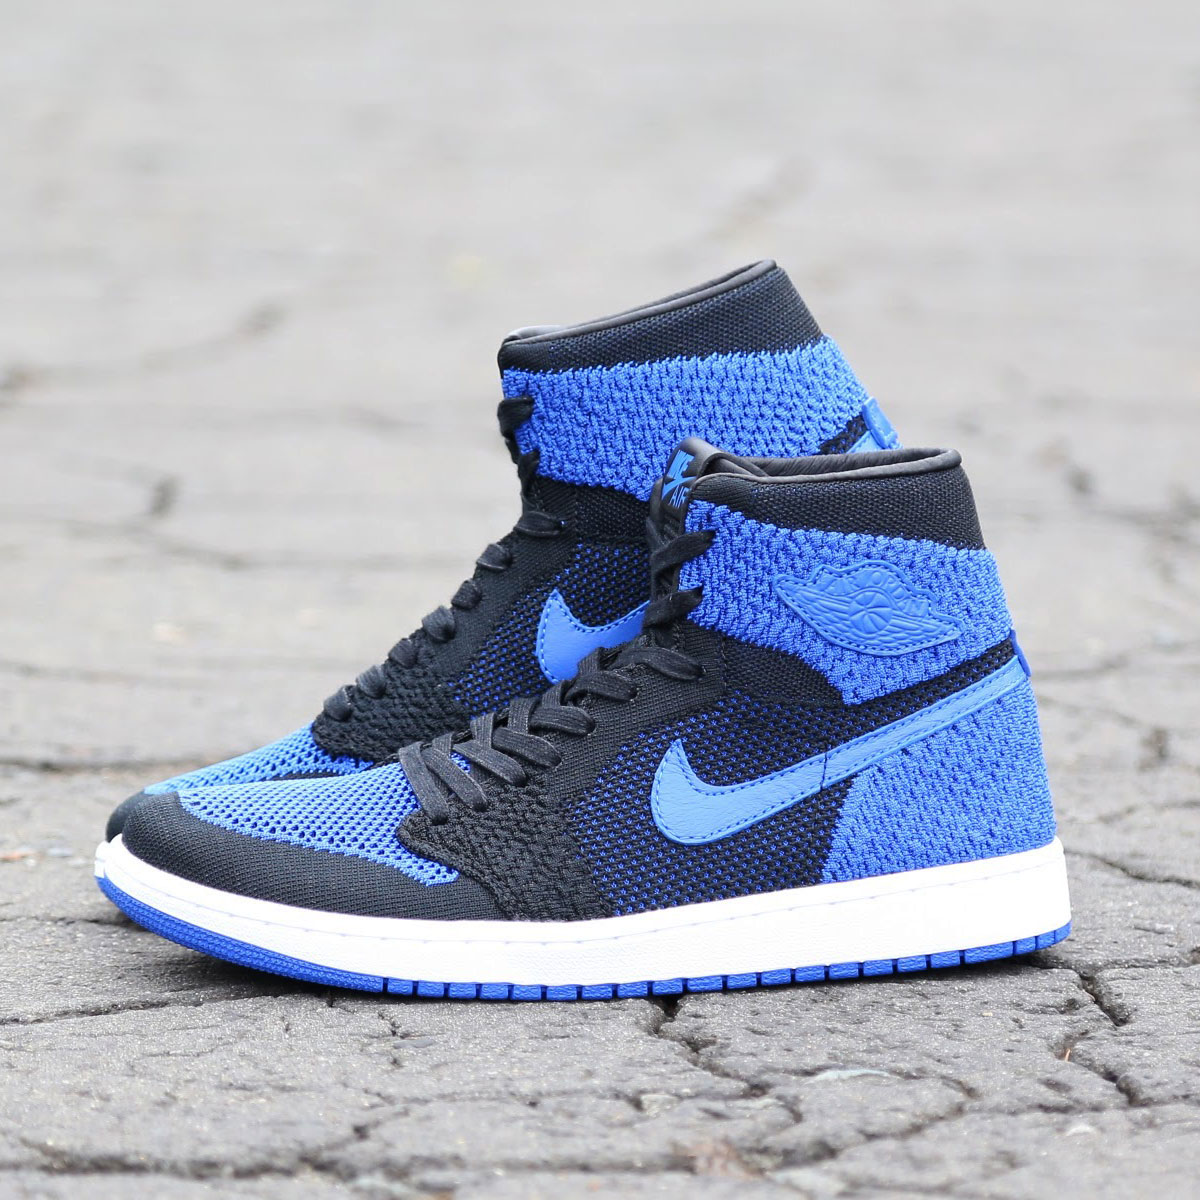 8c889355c6caff NIKE AIR JORDAN 1 RETRO HI FLYKNIT (Nike Air Jordan 1 nostalgic high fried  food knit) BLACK GAME ROYAL-WHITE 17HO-S